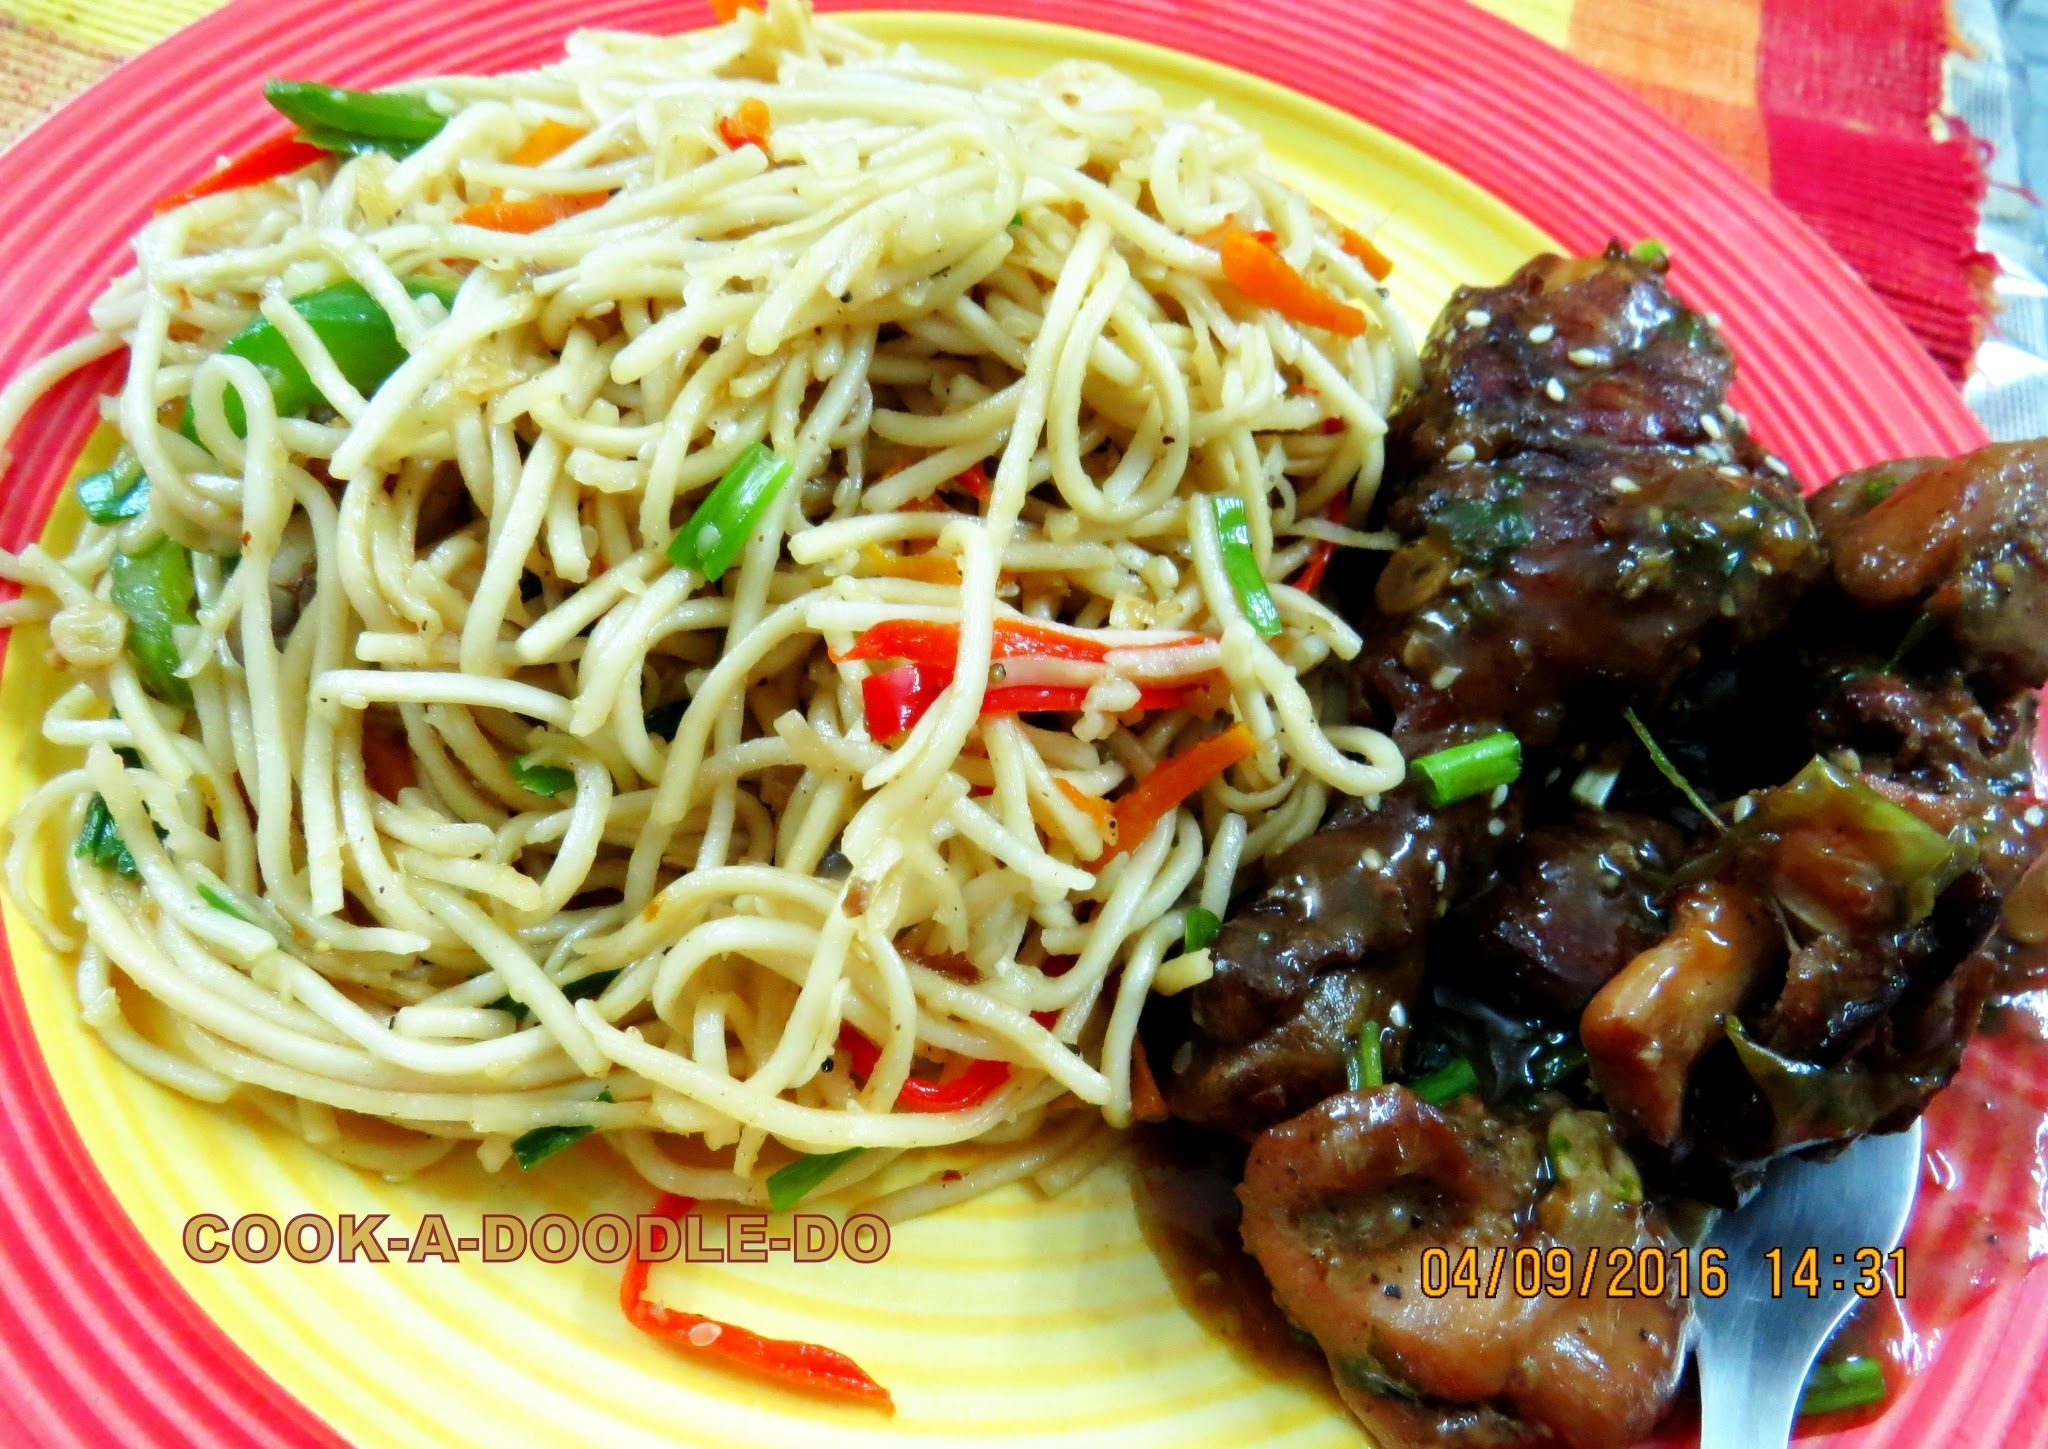 Chili Chicken & Vegetable Chowmein